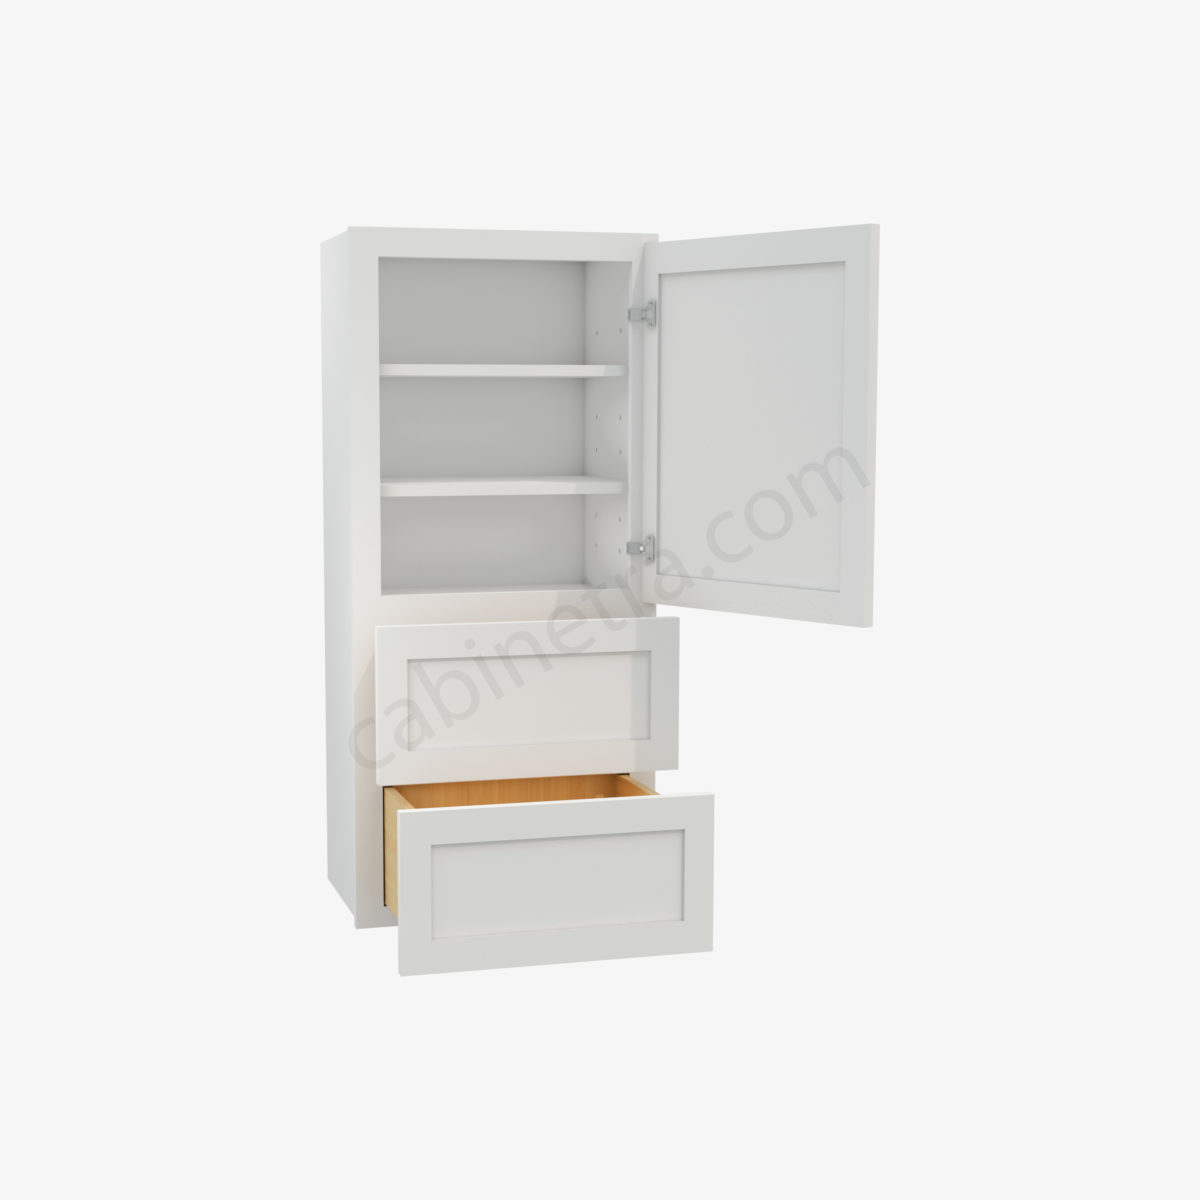 AW W2D1848 1 Forevermark Ice White Shaker Cabinetra scaled